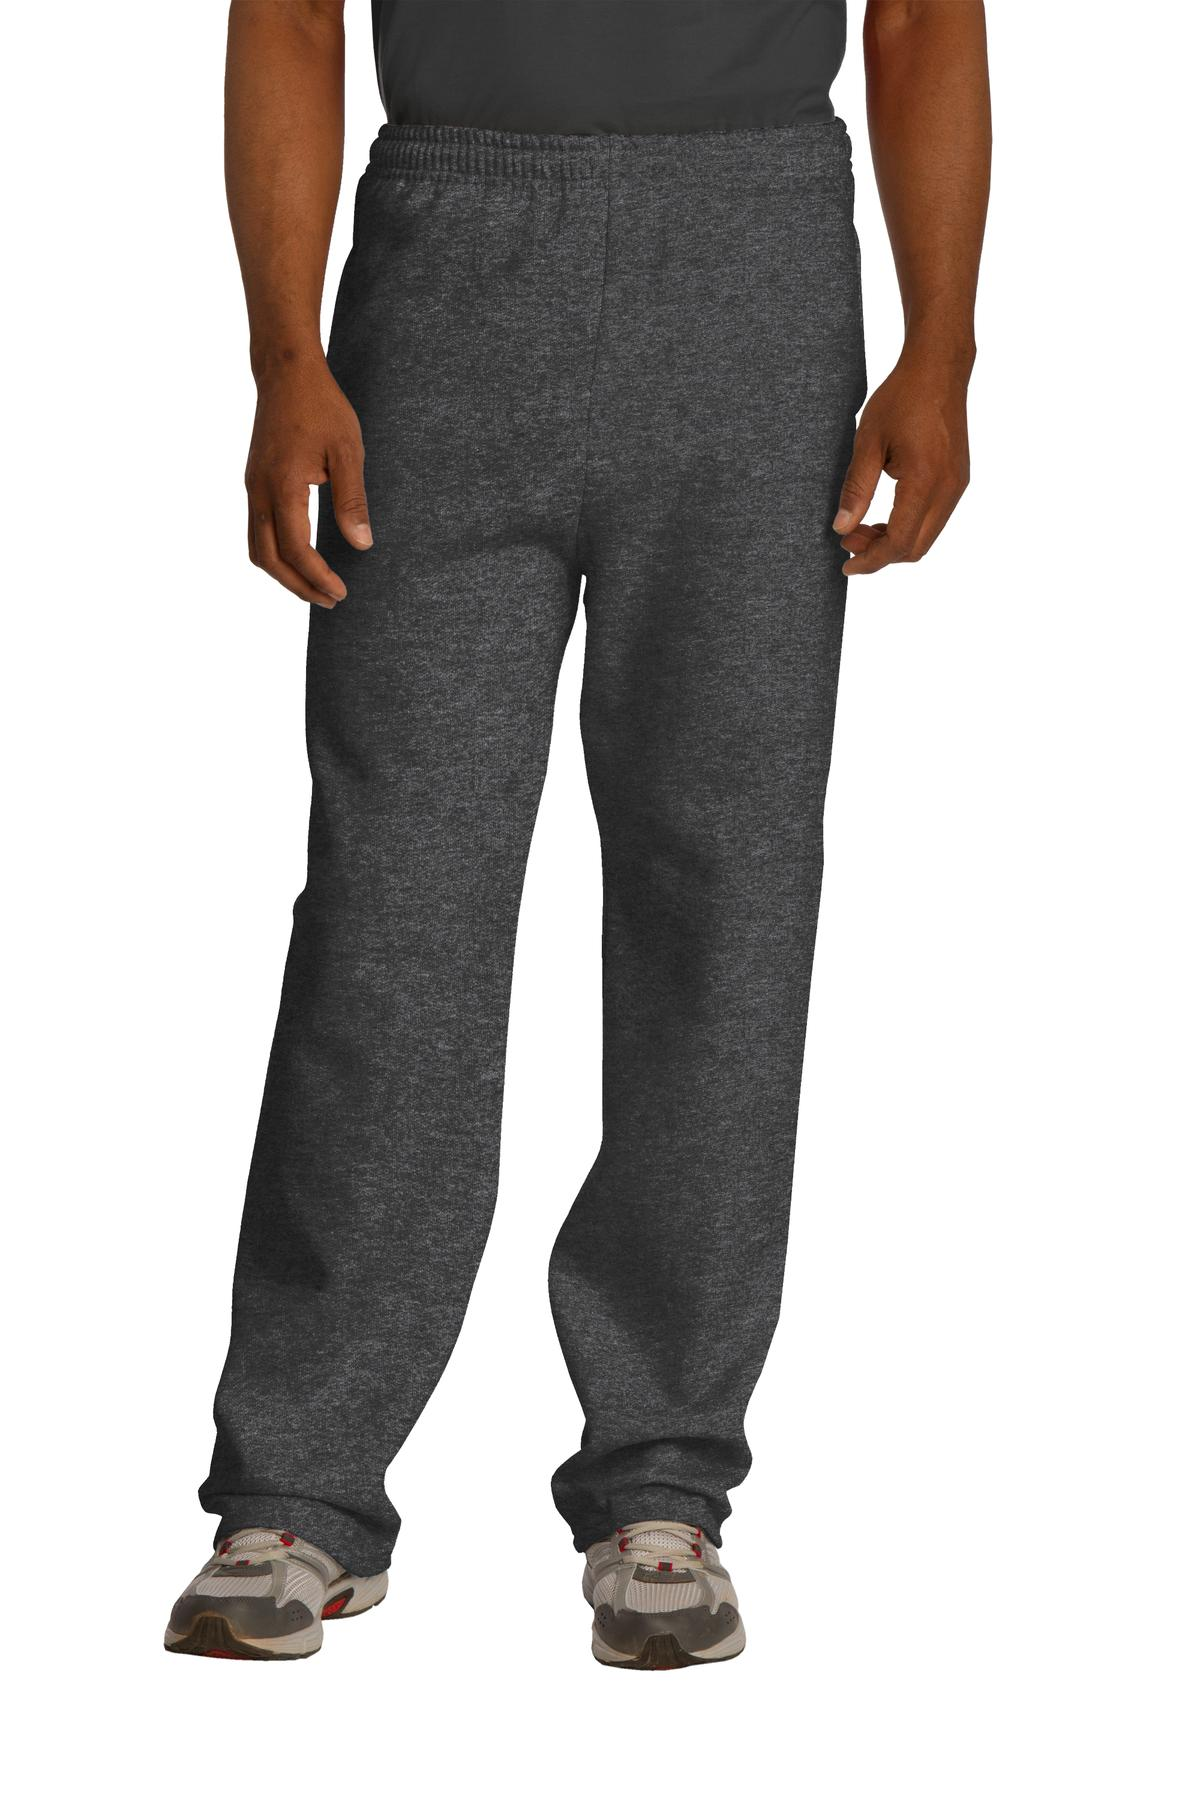 JERZEES ®  NuBlend ®  Open Bottom Pant with Pockets. 974MP - Black Heather